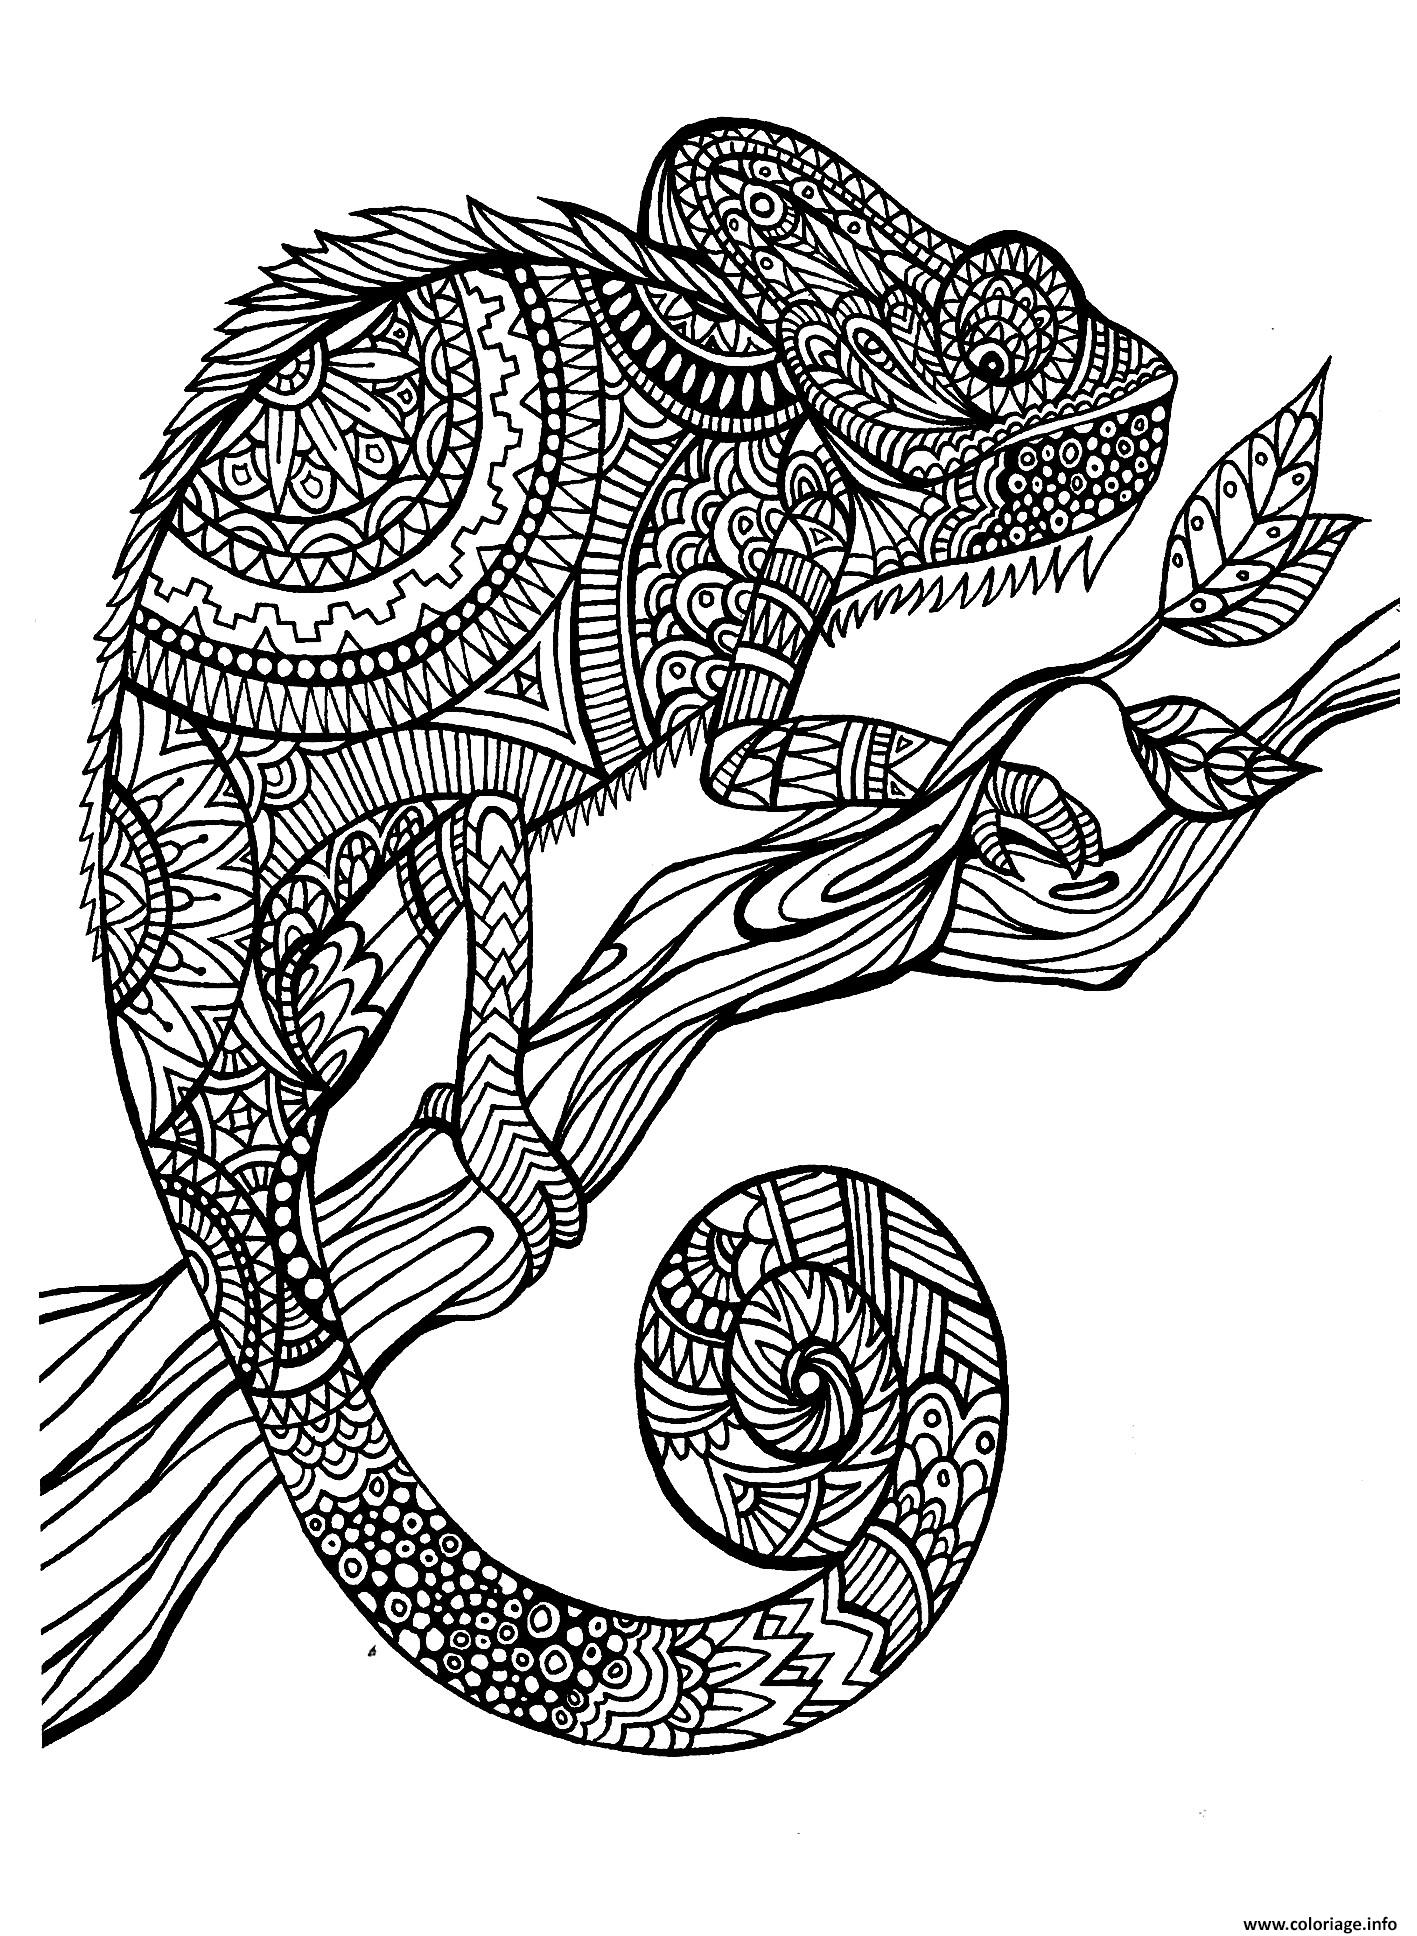 messi coloring pages - adulte animaux cameleon coloriage